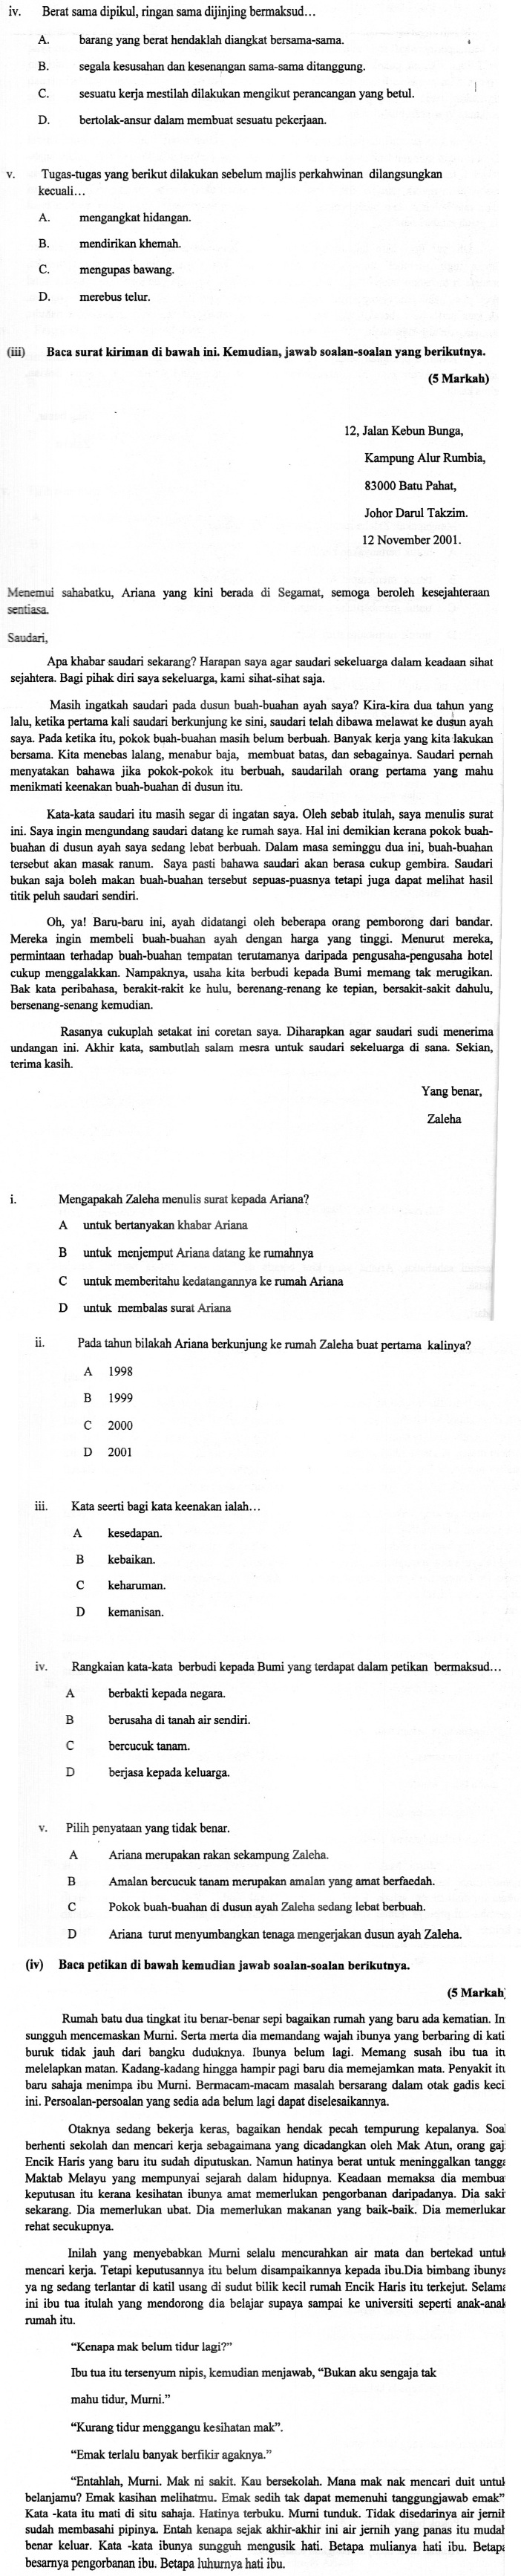 CBSE Class X Previous Year Question Papers 2012 BahasaMelayu